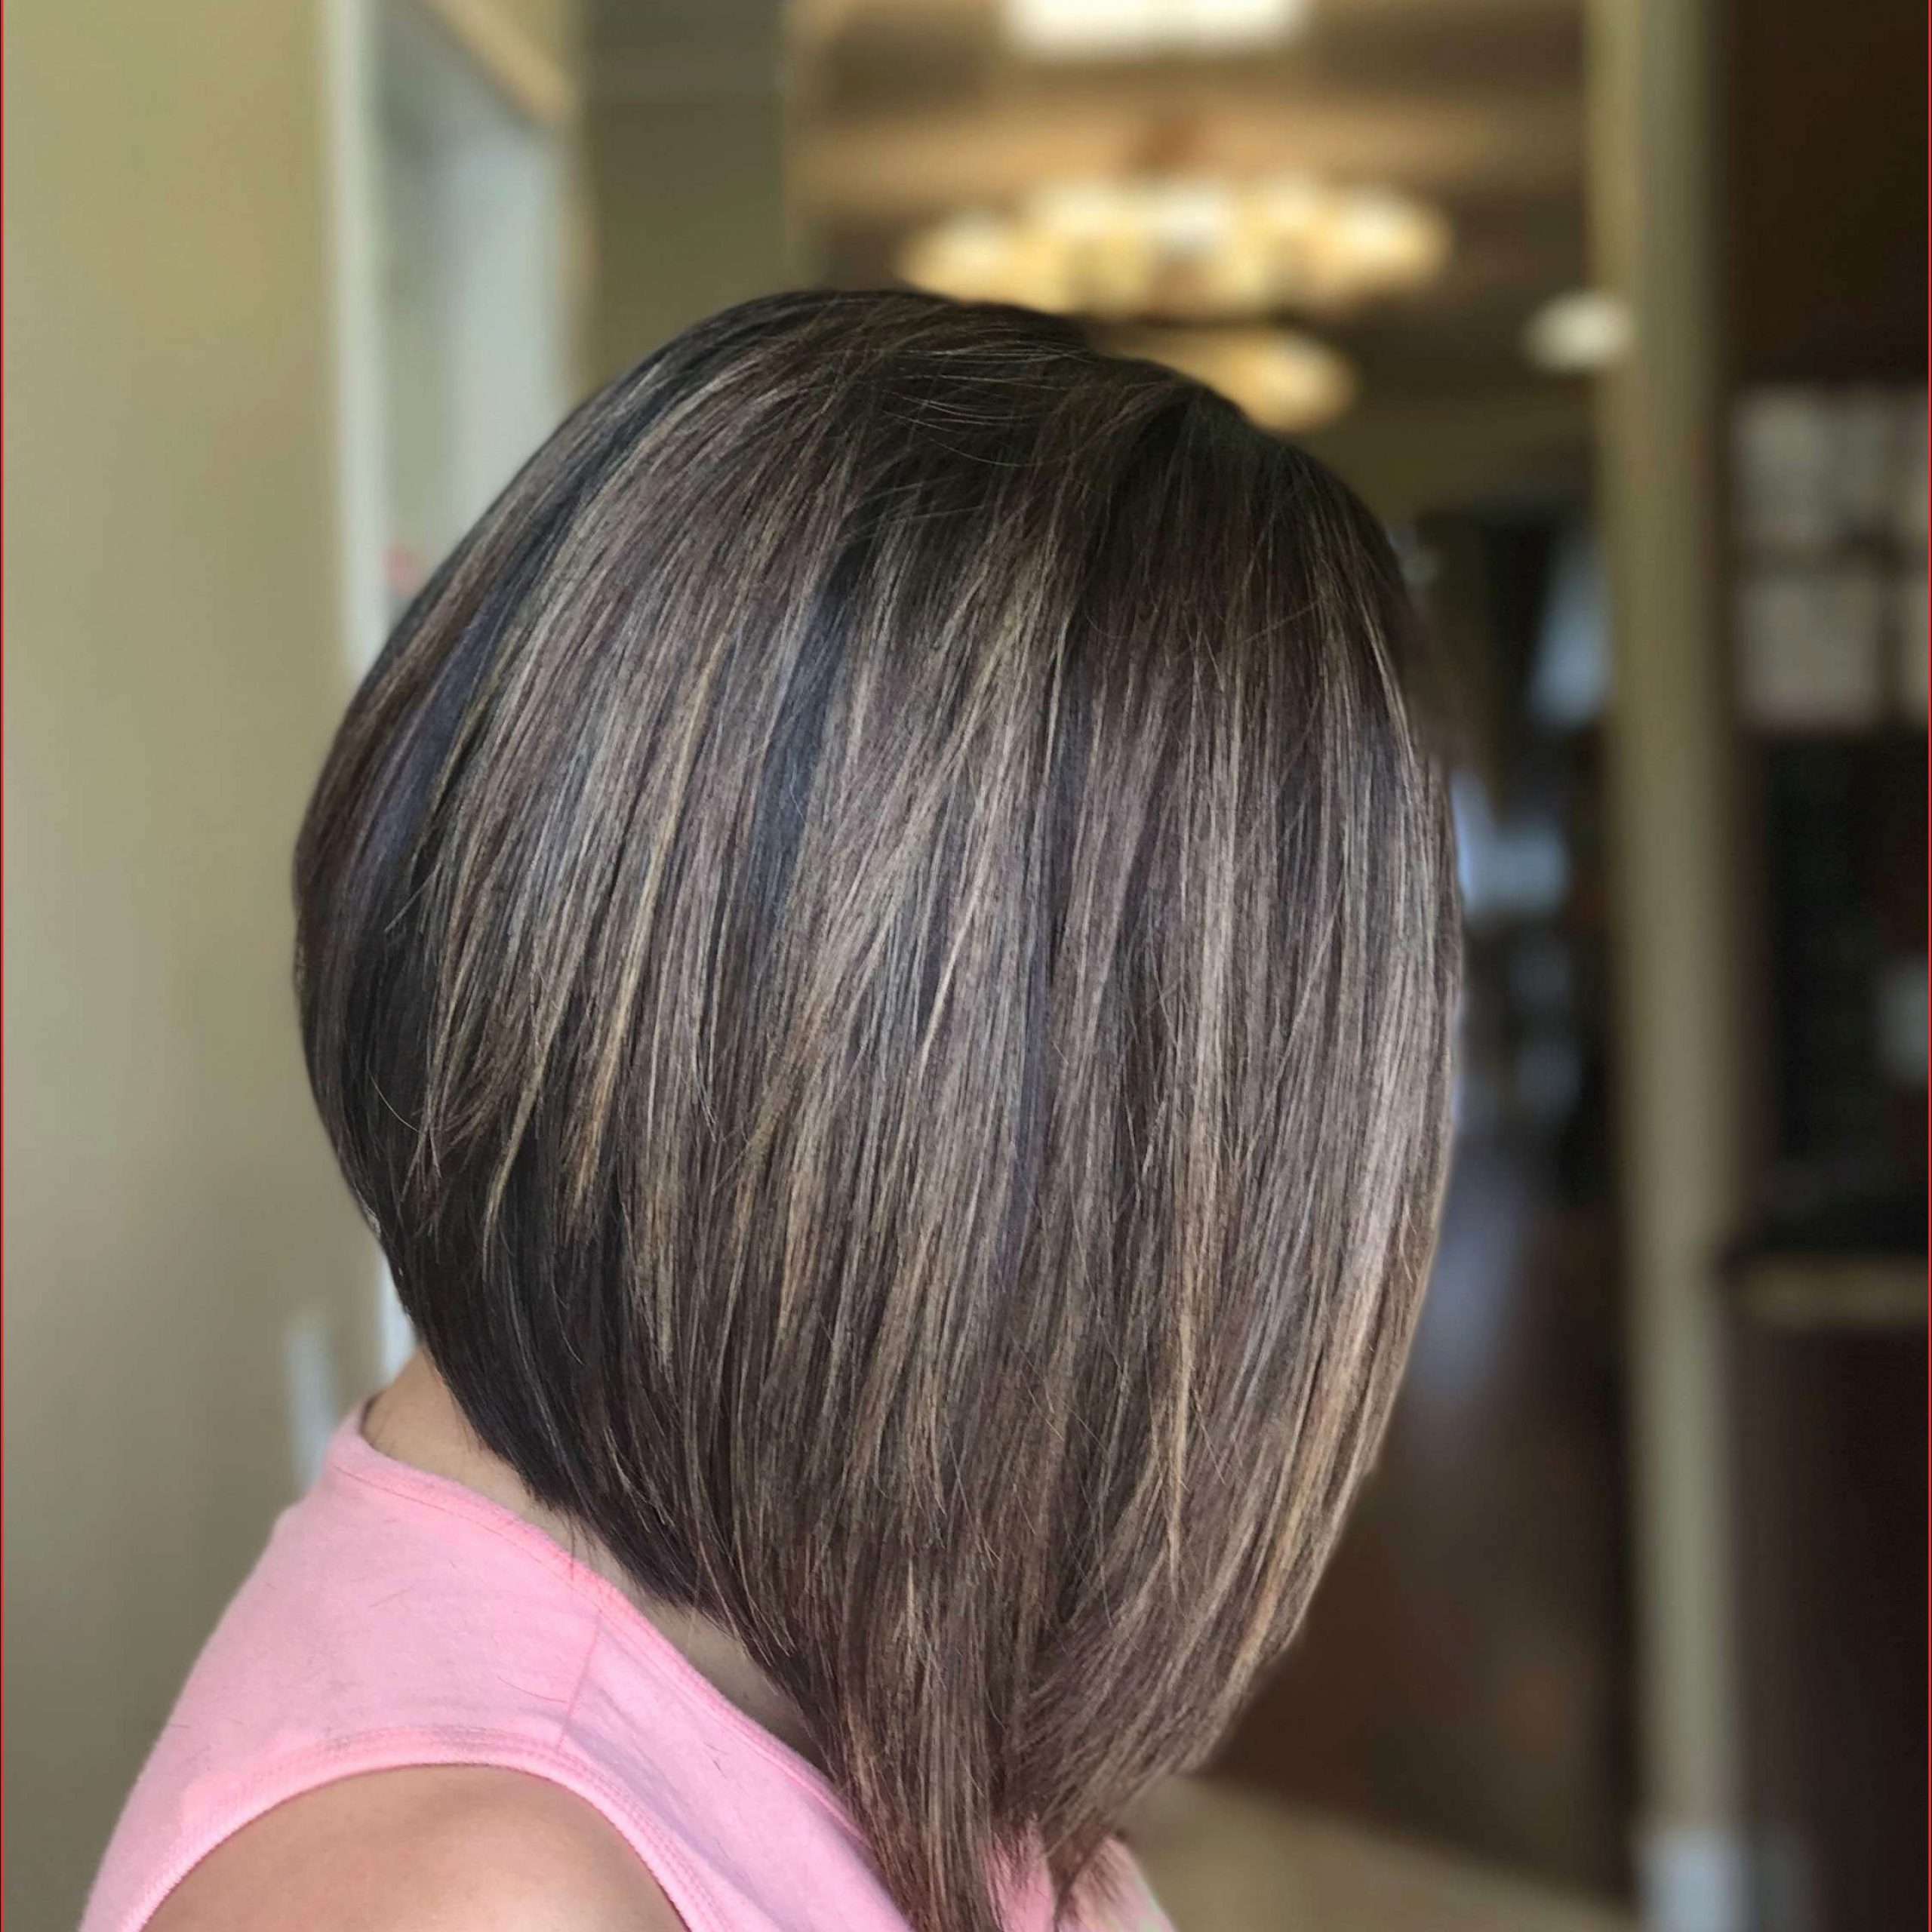 Very Short Inverted Bob With Bangs Throughout Newest Super Short Inverted Bob Hairstyles (View 17 of 20)